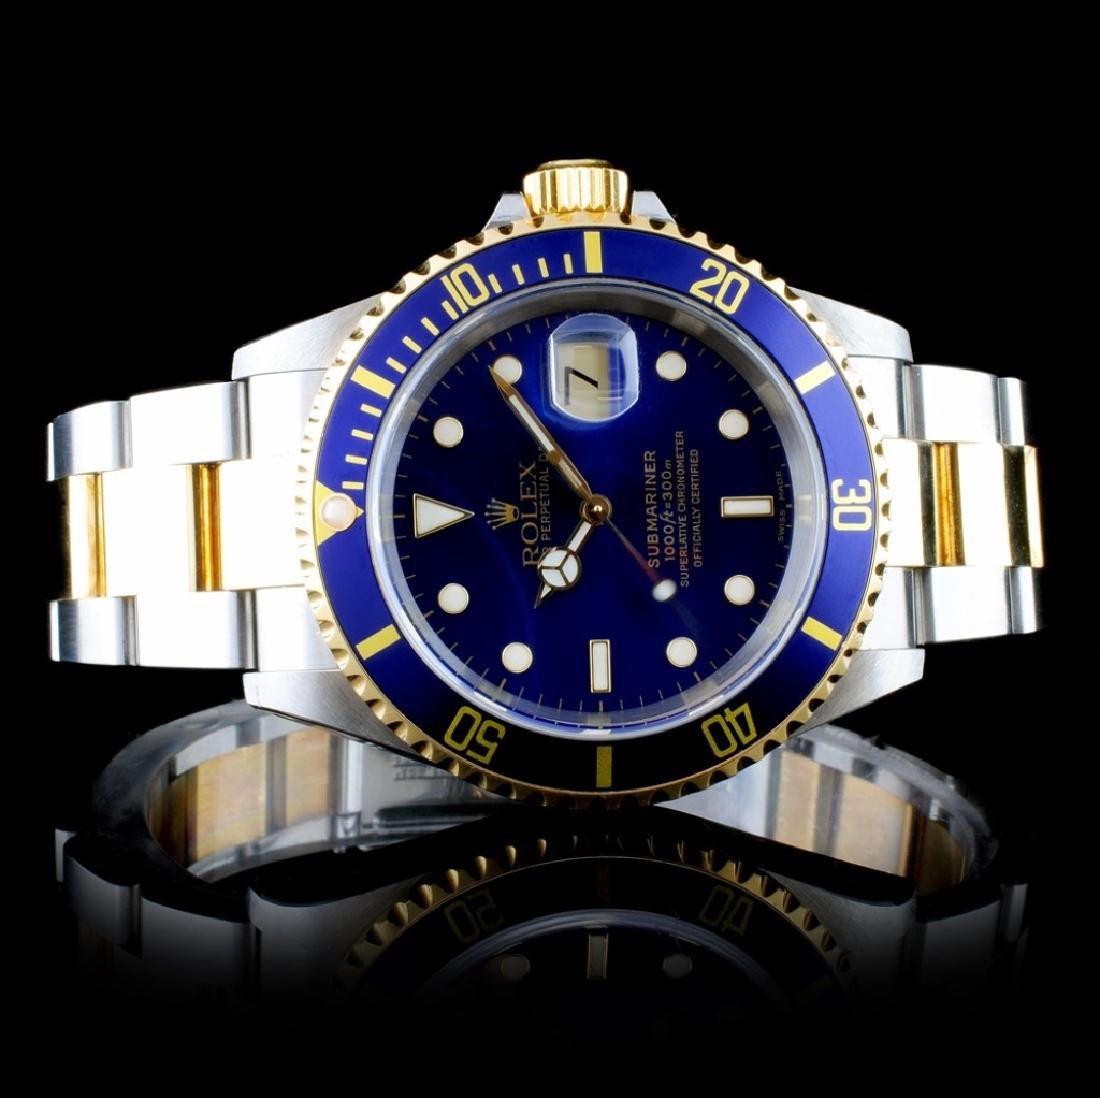 Rolex Submariner 18K & Stainless Steel Watch